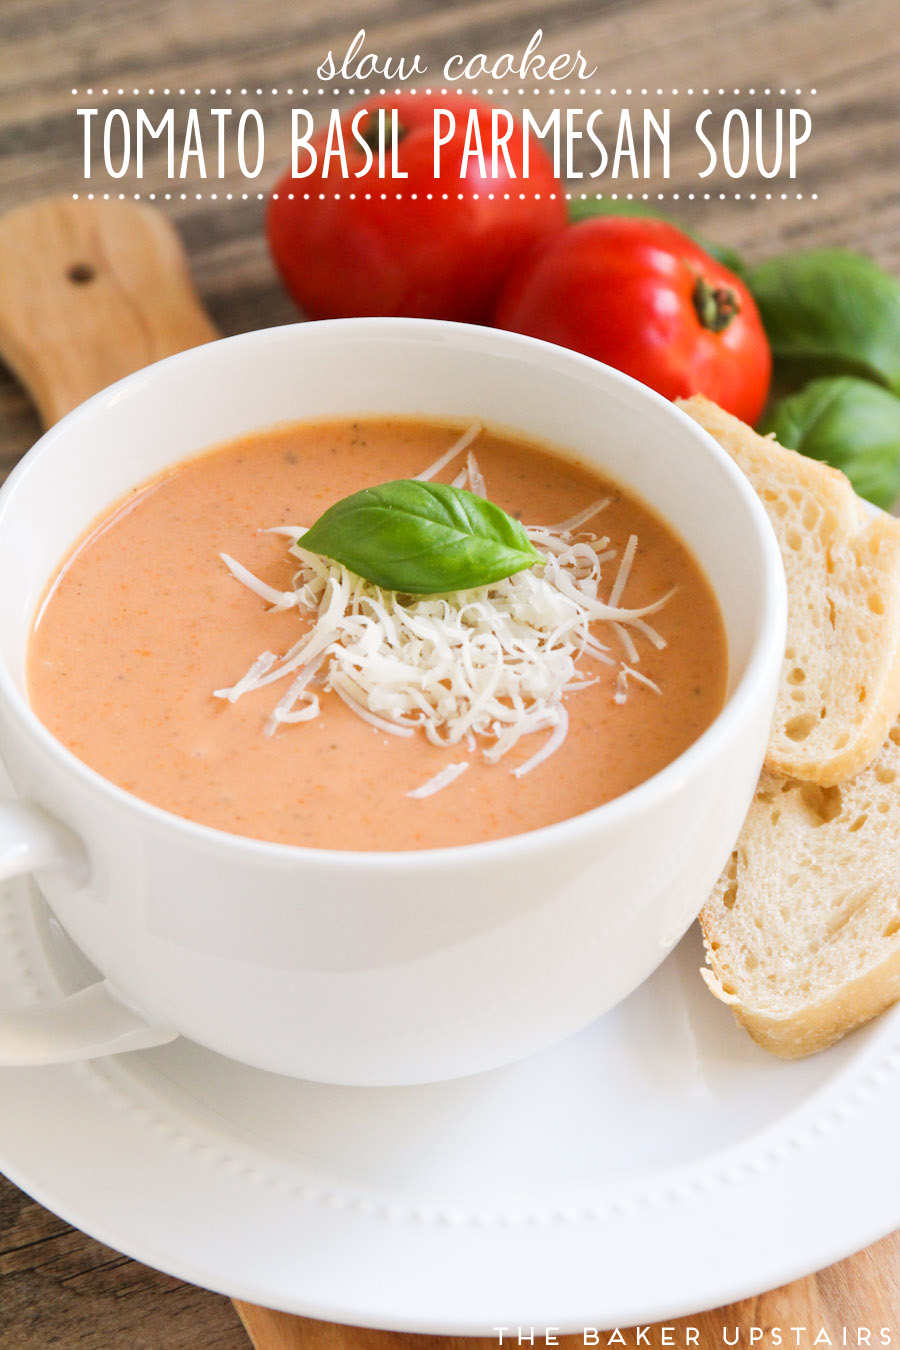 the baker upstairs: slow cooker tomato basil parmesan soup